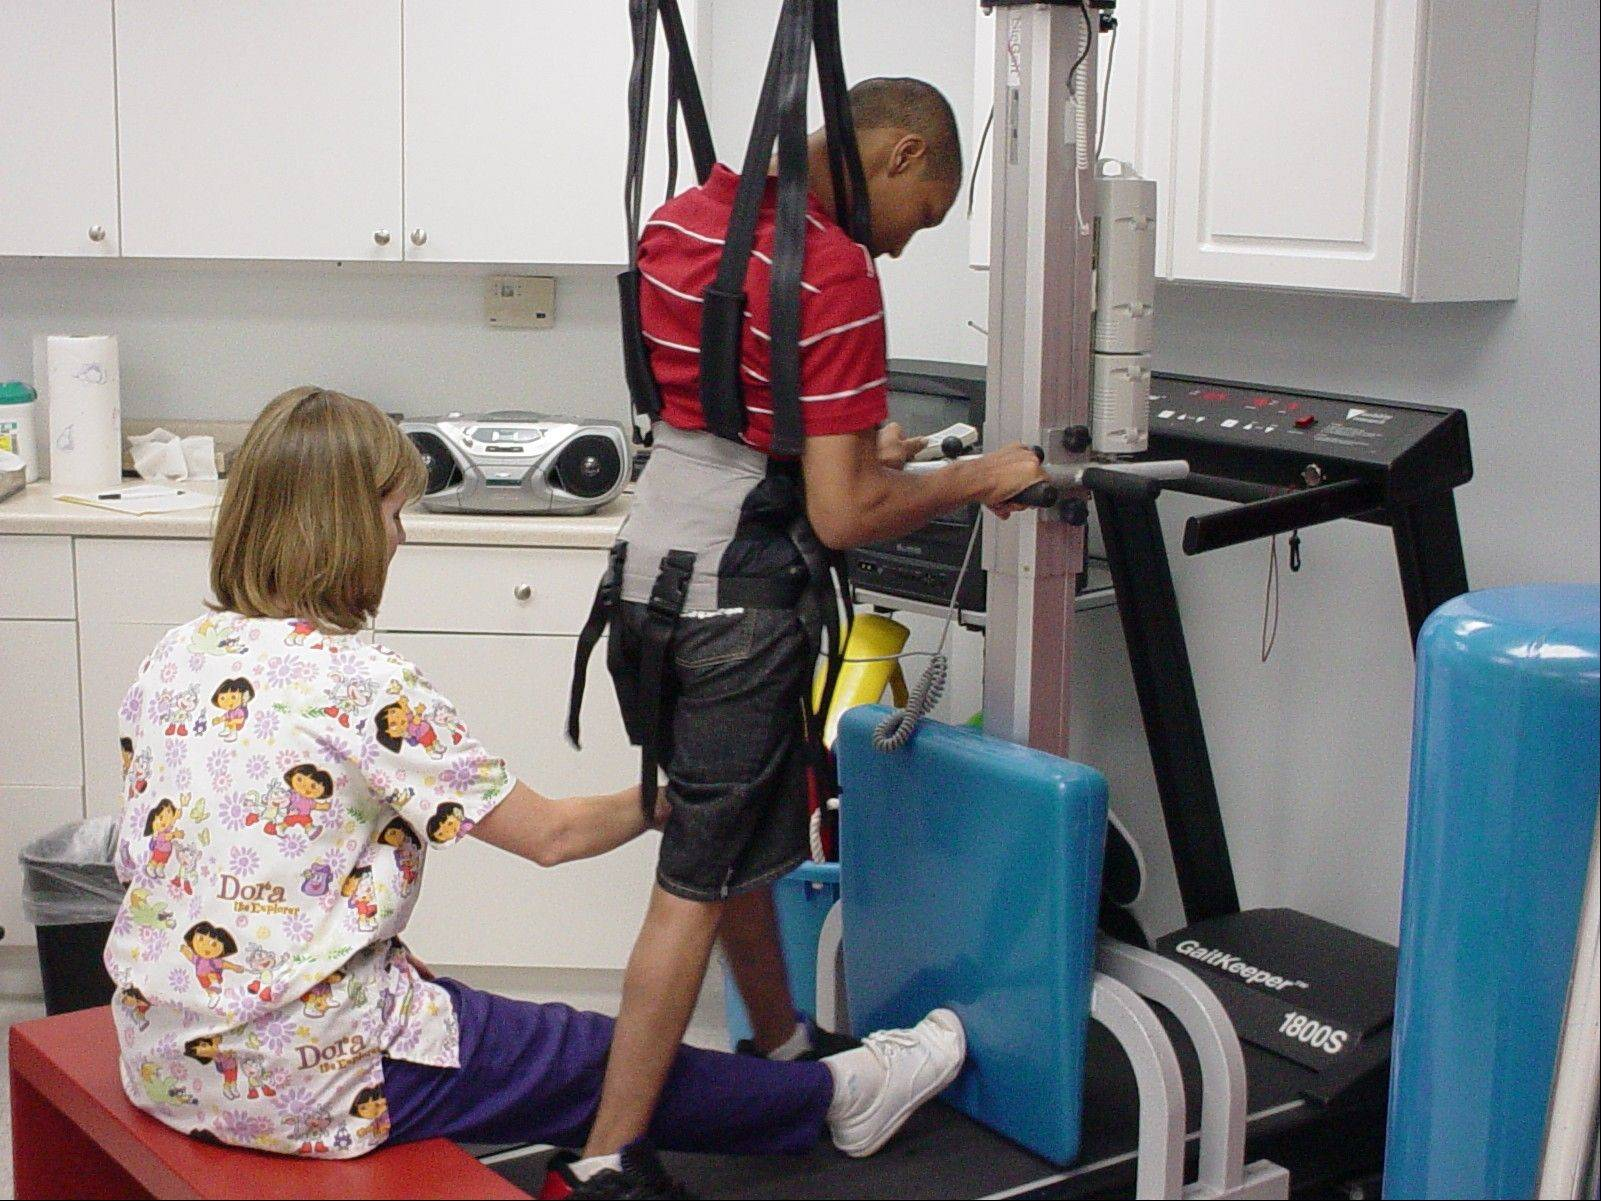 People with physical disabilities can find therapy through the Association for Individual Development, based in Aurora.